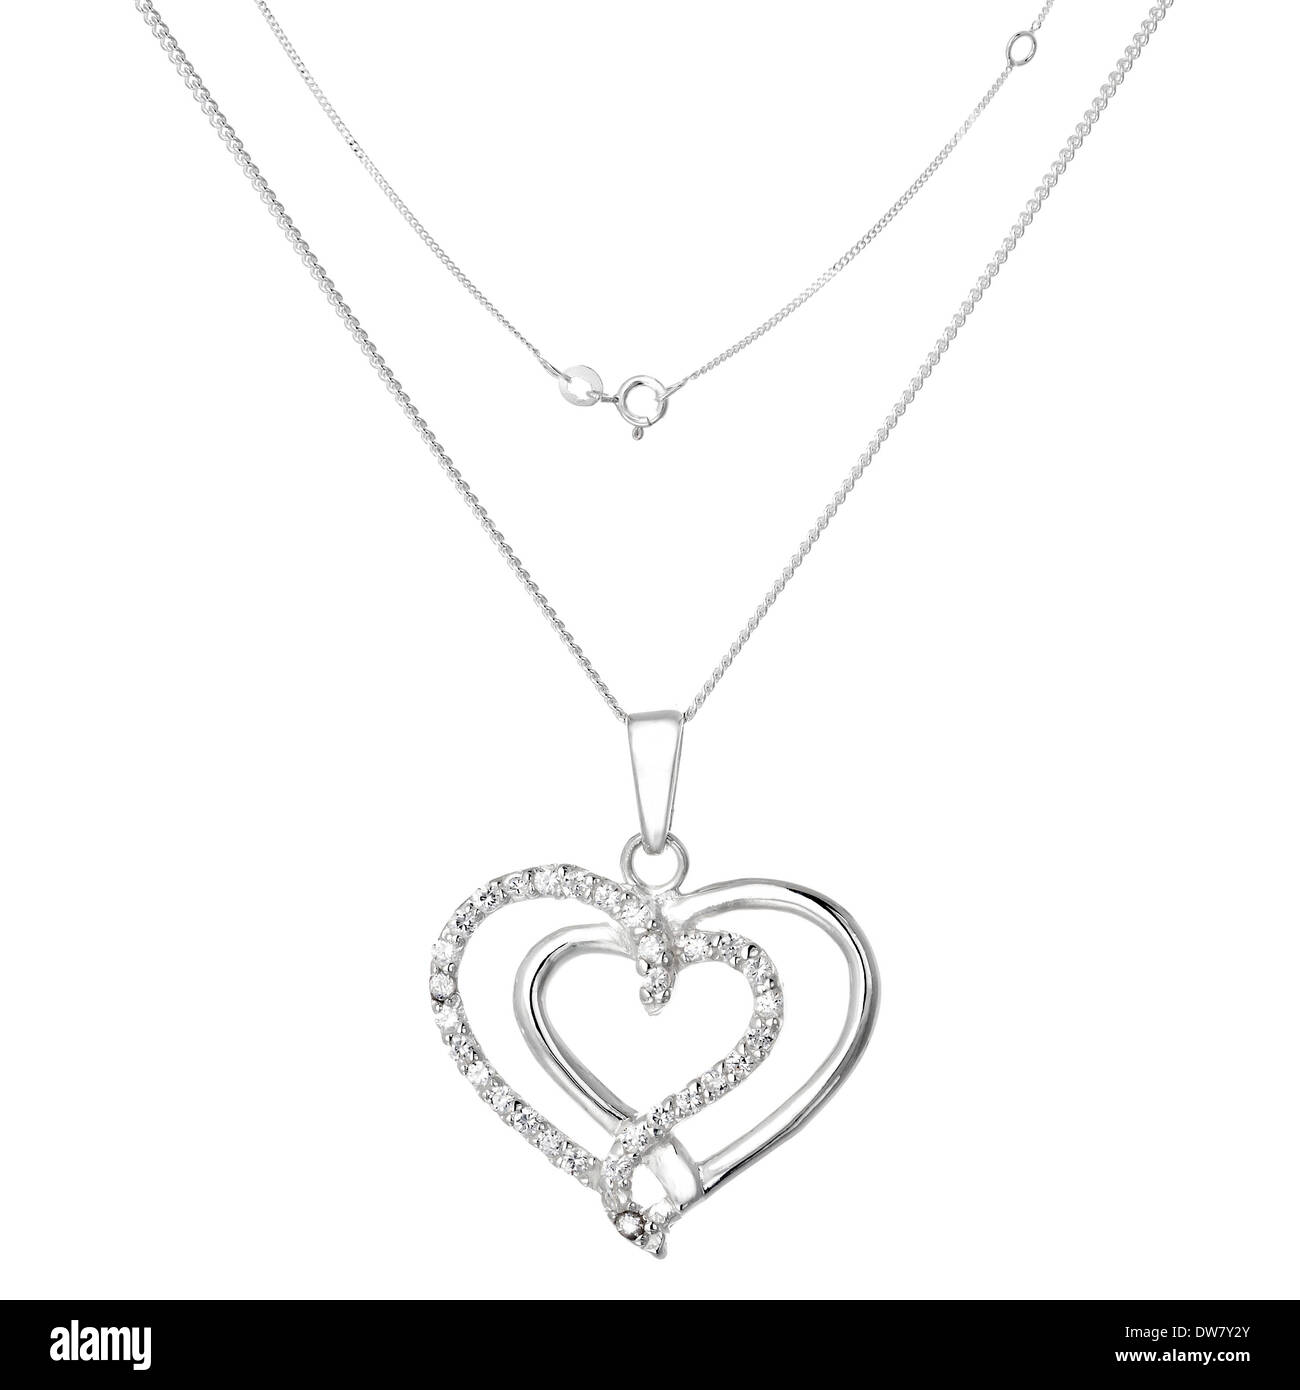 Silver necklace and pendant in the shape of heart - Stock Image